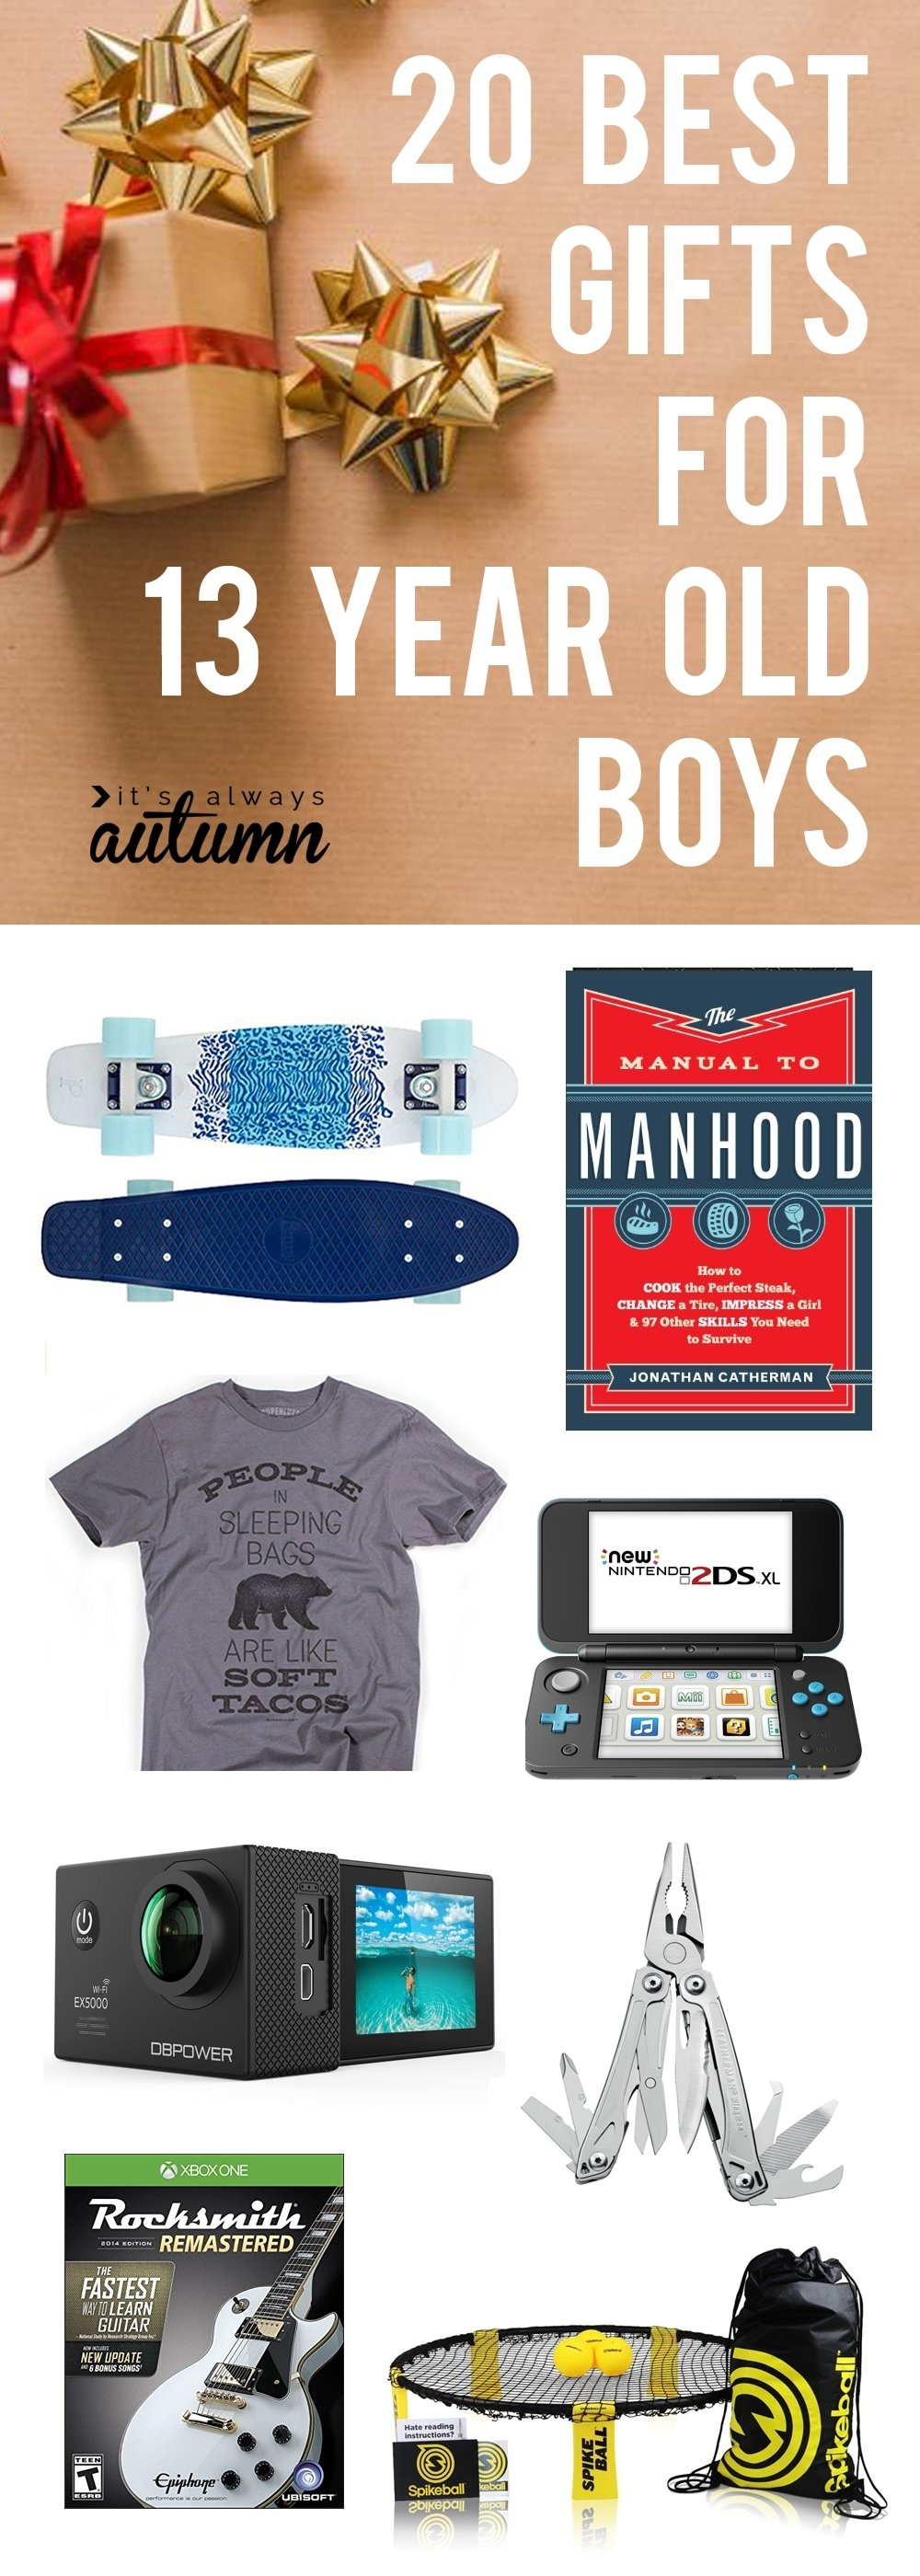 10 Beautiful Christmas Gift Ideas For 13 Year Old Boy best christmas gifts for 13 year old boys its always autumn 24 2020